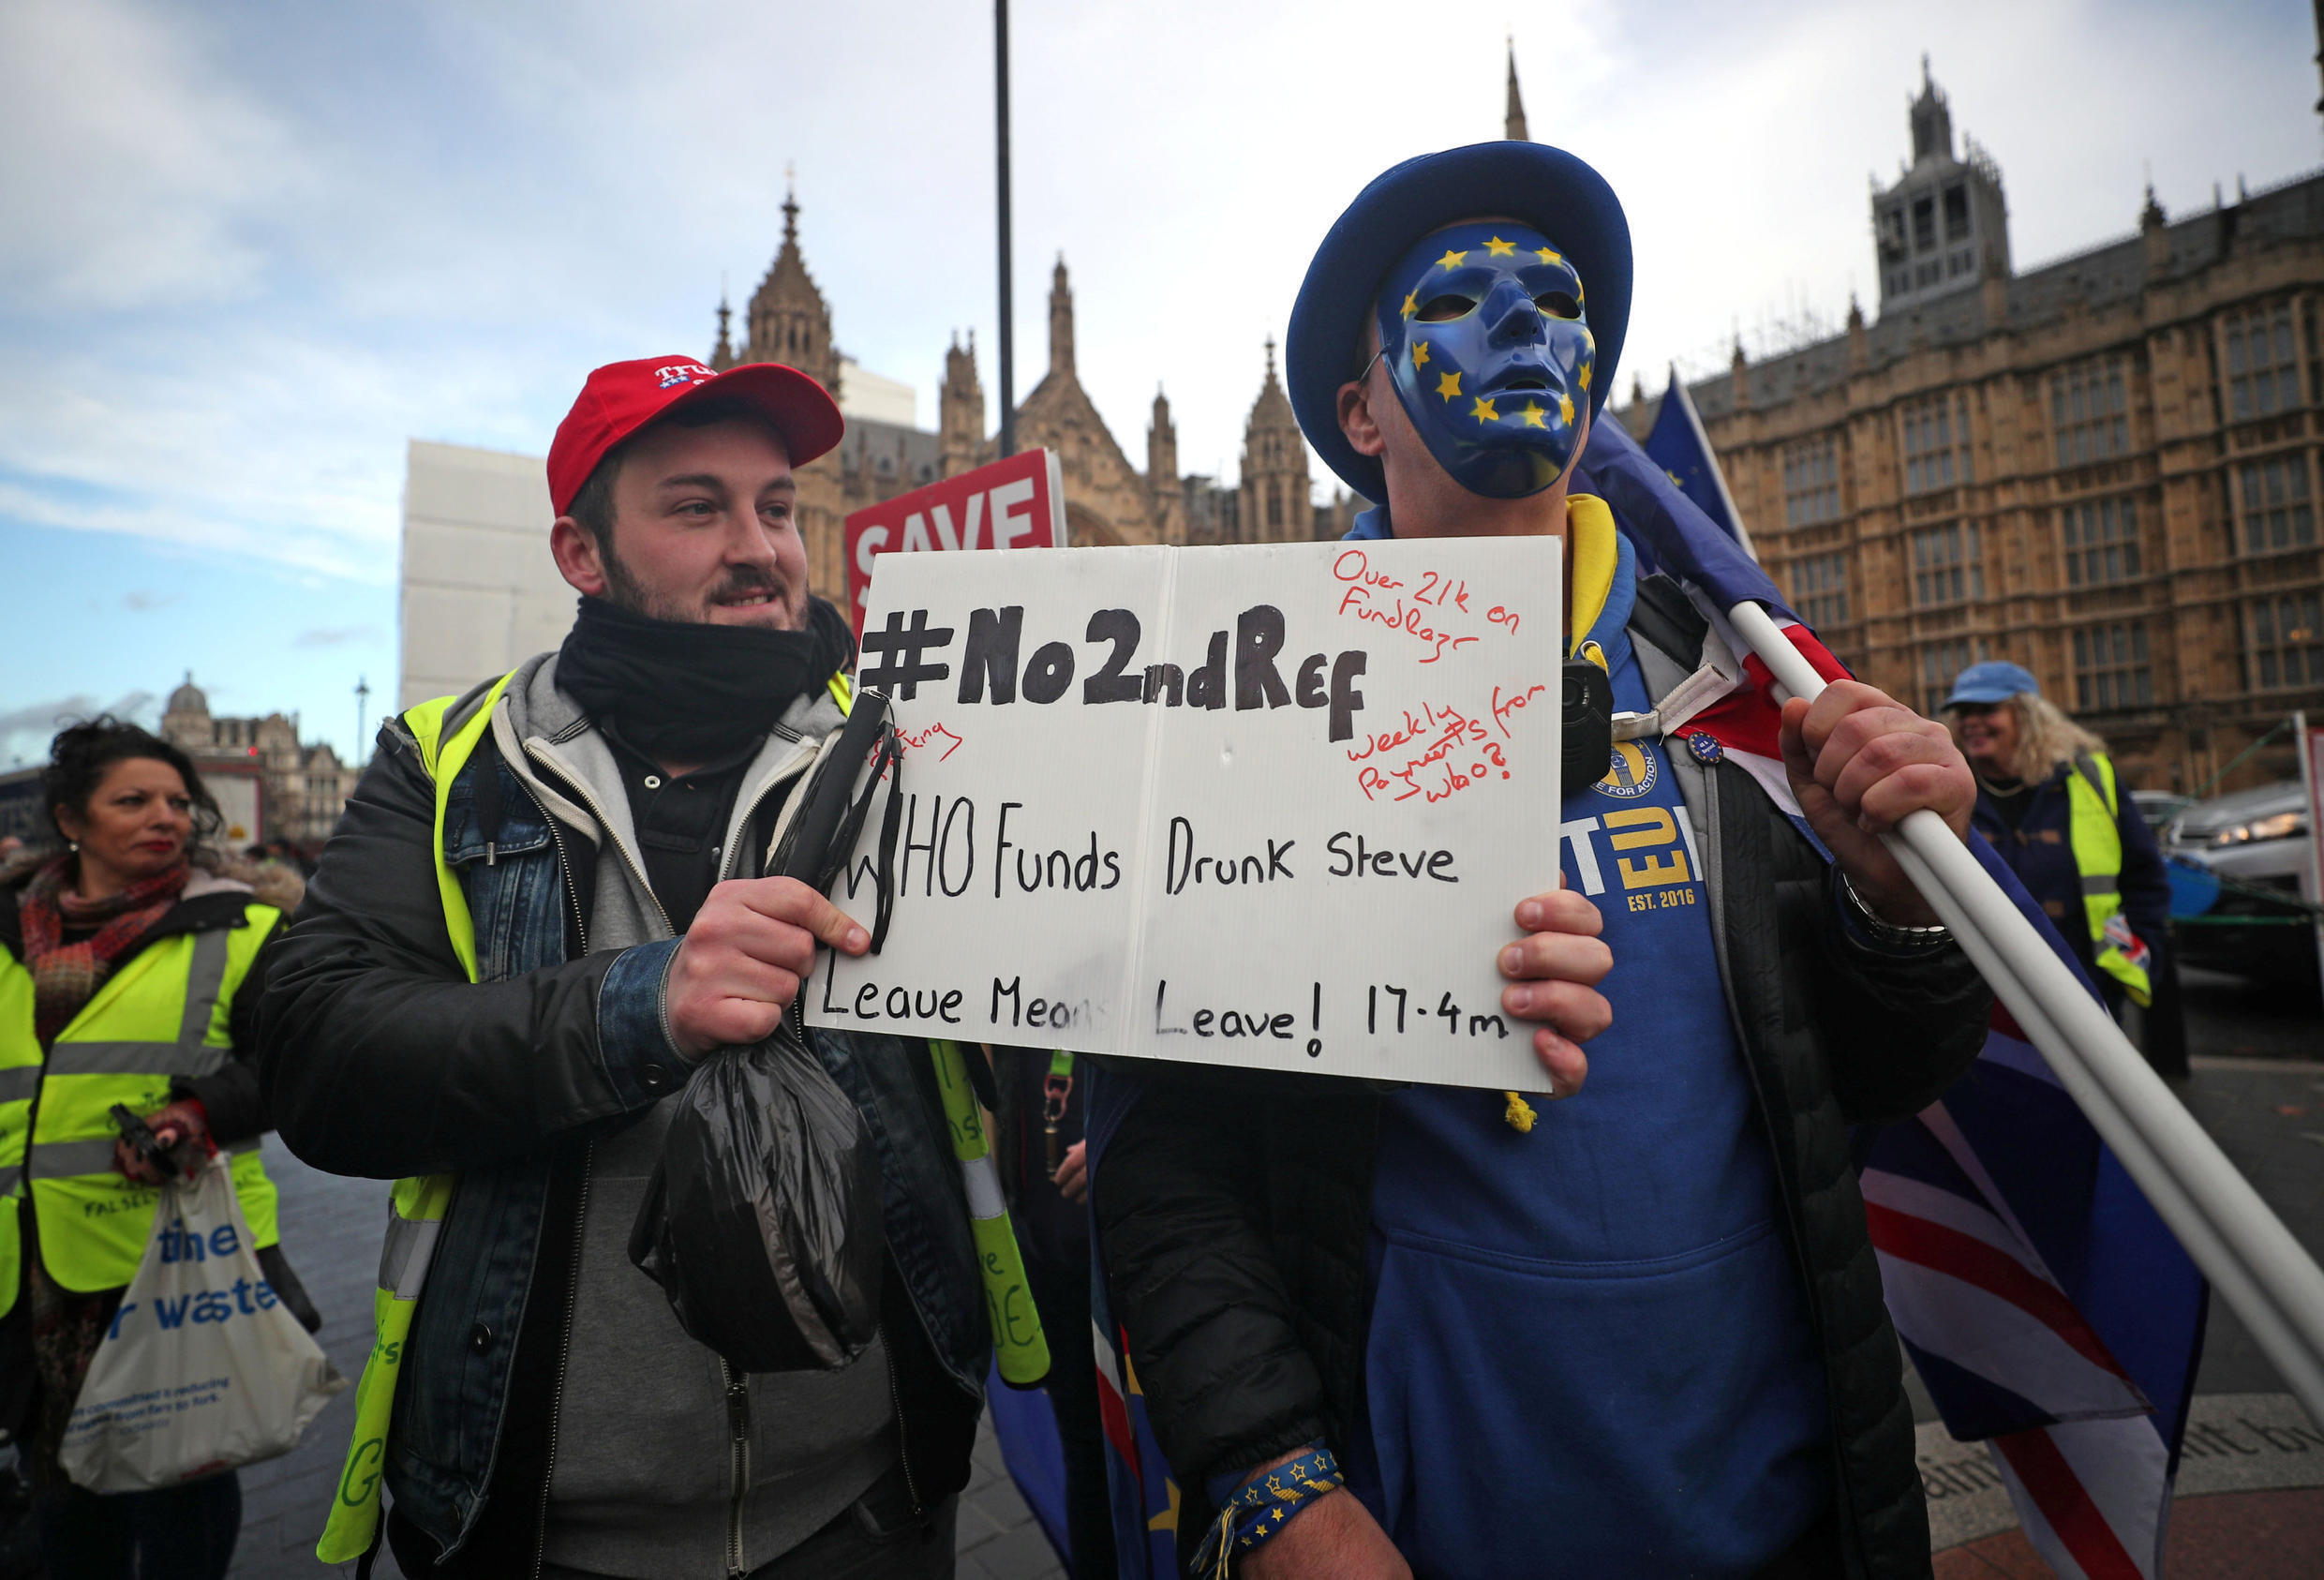 """British """"Yellow Vests UK"""" demonstrator James Goddard holds a placard in front of a pro-EU demonstrator outside the Houses of Parliament in London, 19 December 2018."""